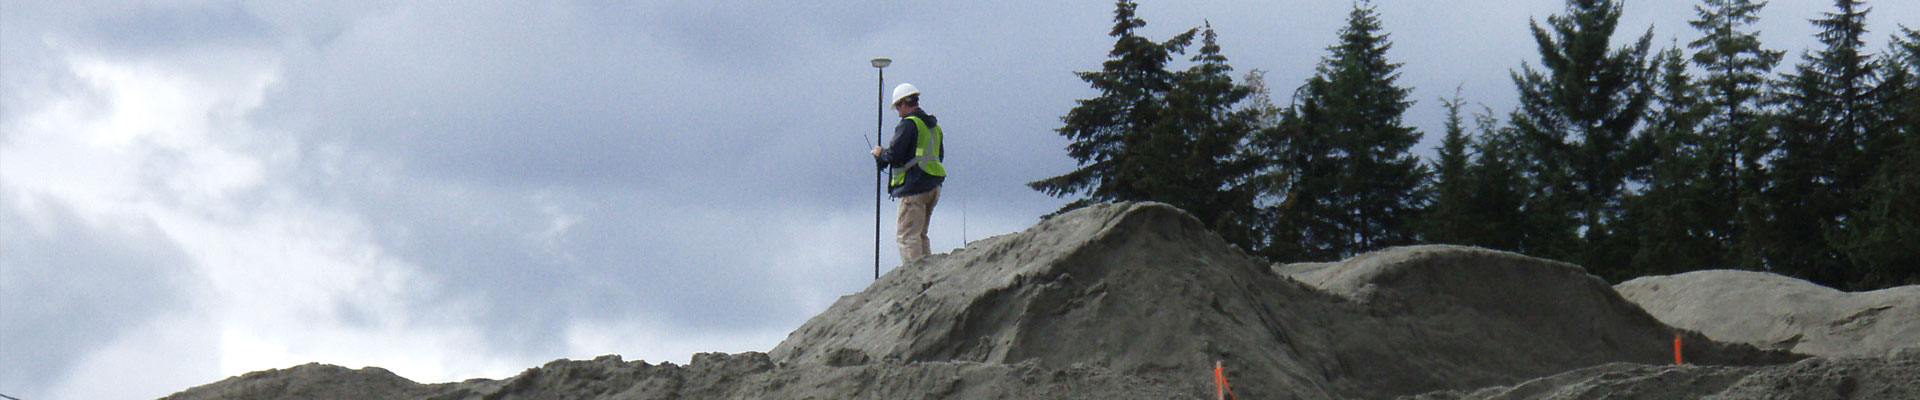 Wade Surveyors | BC Land Surveyors